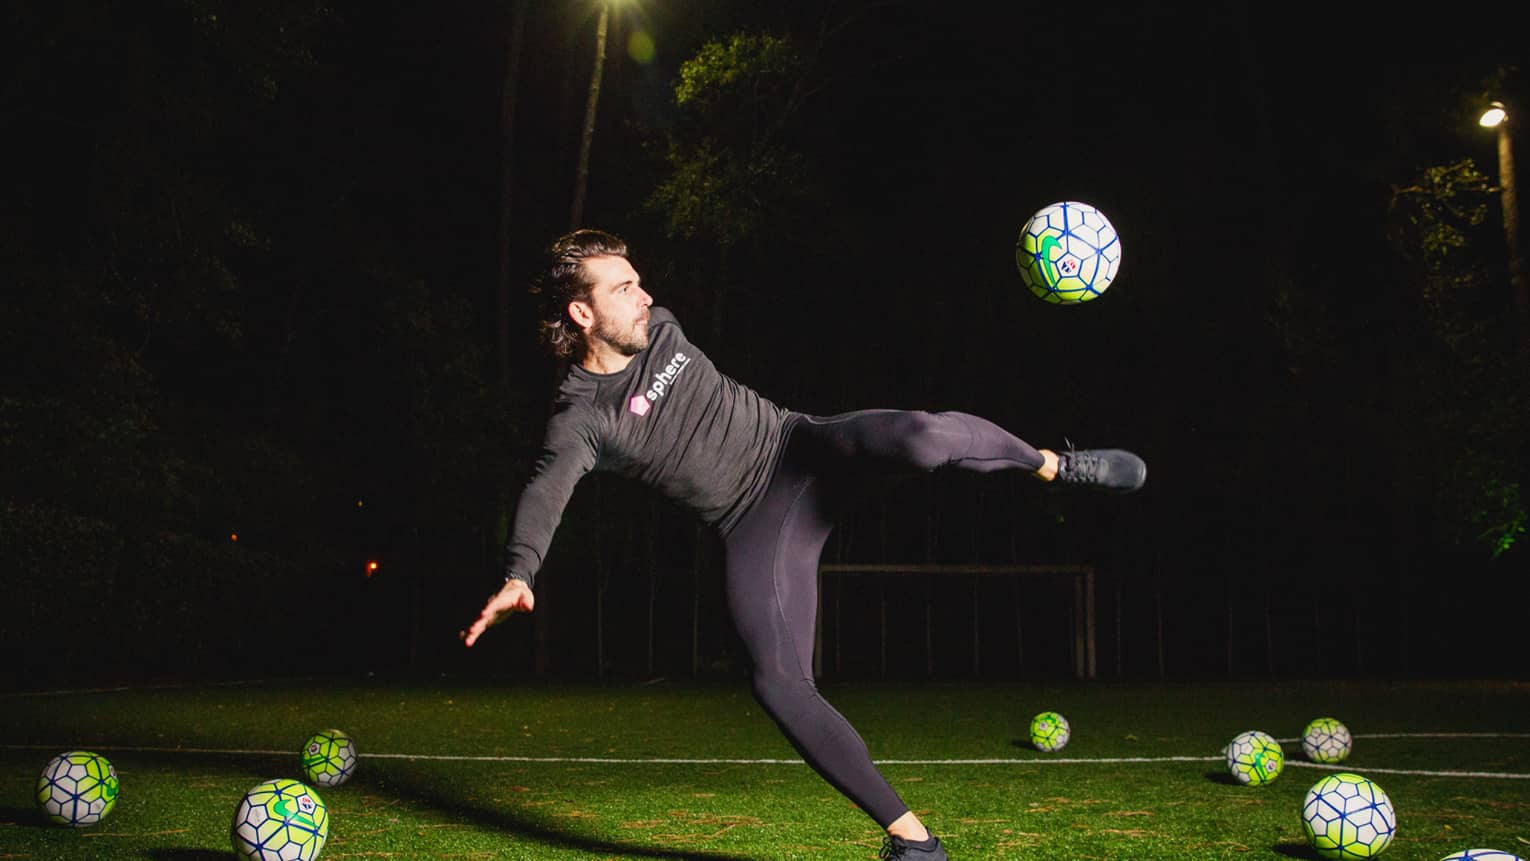 POWA by sphere session, Michael Chabala kicks soccer ball in mid-air on field with multiple balls at night